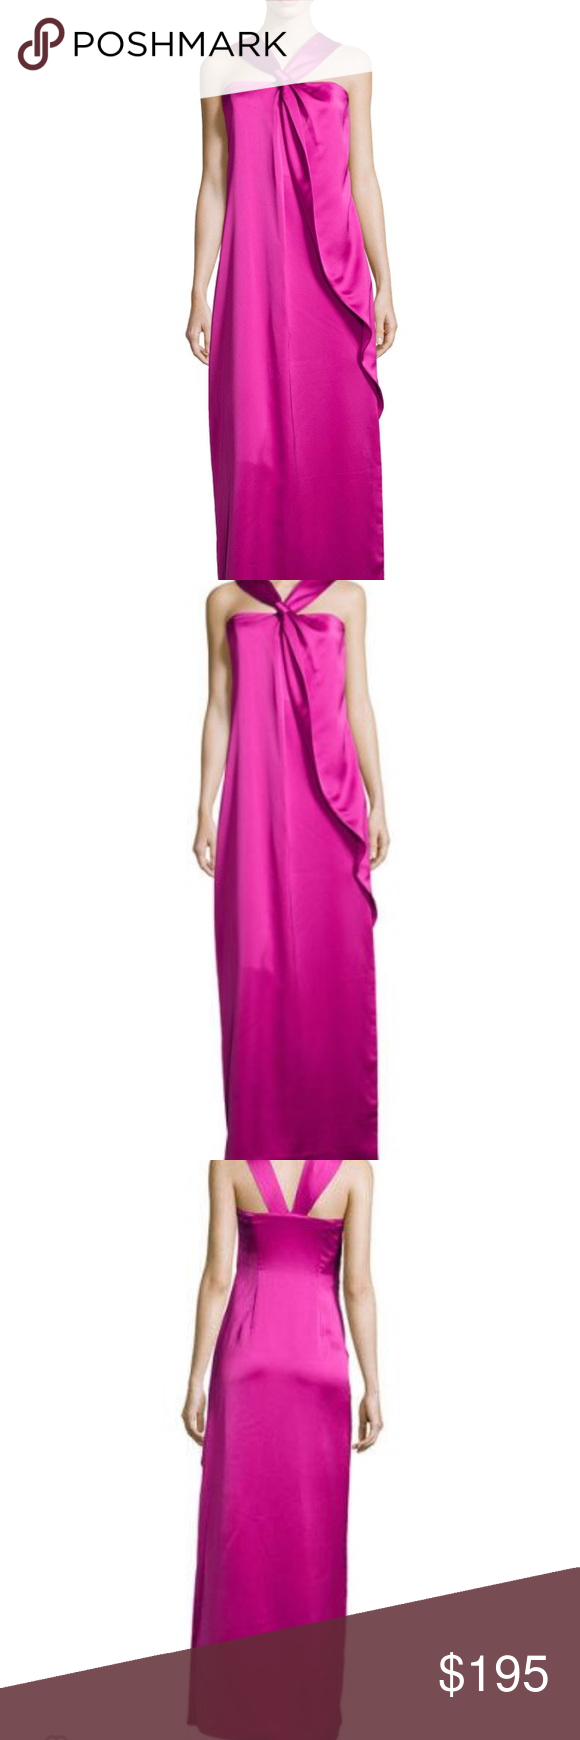 Halston Heritage knotted front ruffle gown NWT   Pinterest   Halston ...